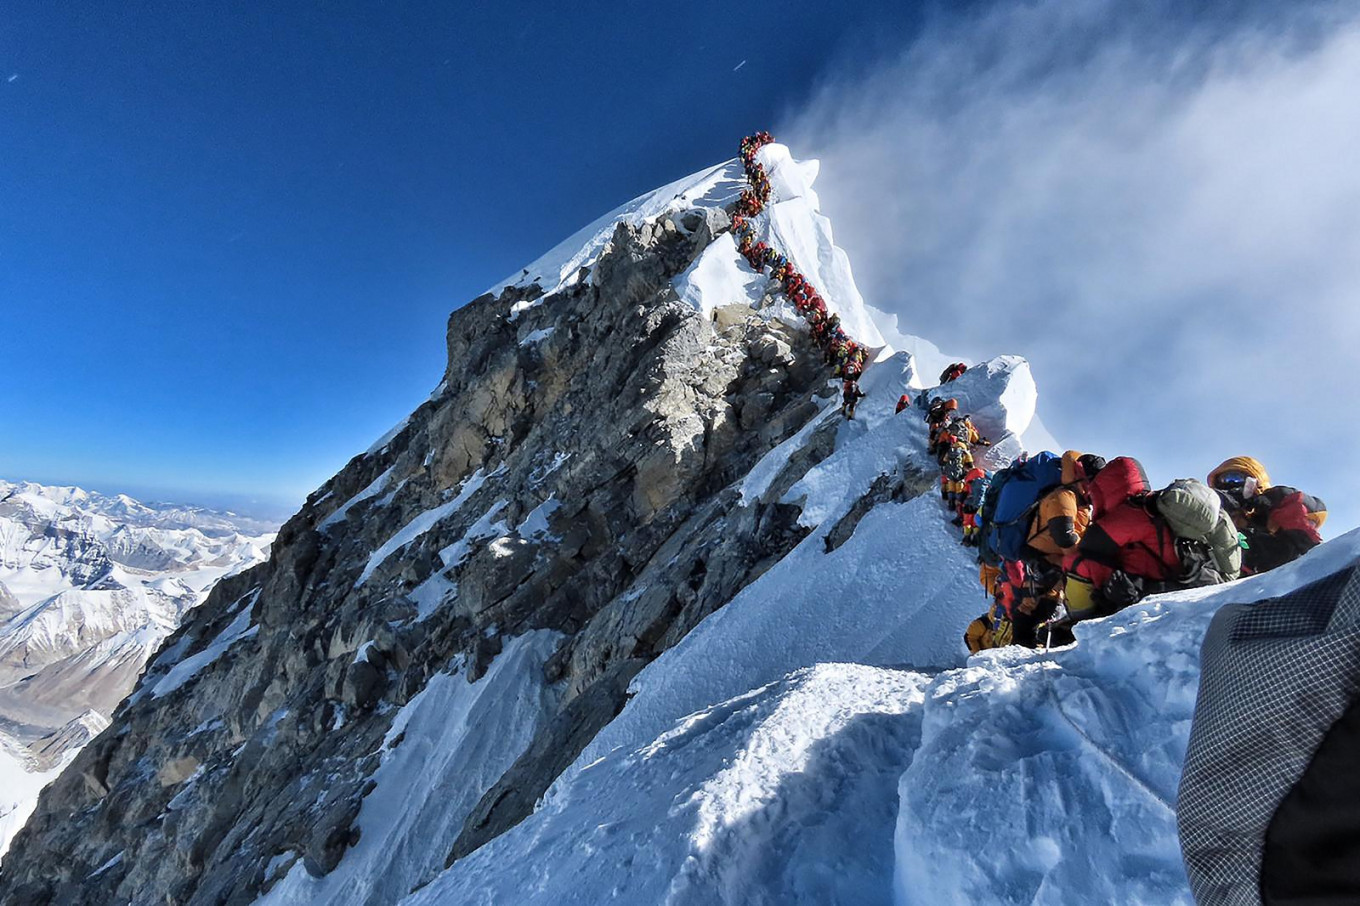 Congestion didnt kill climbers on Everest: Nepal